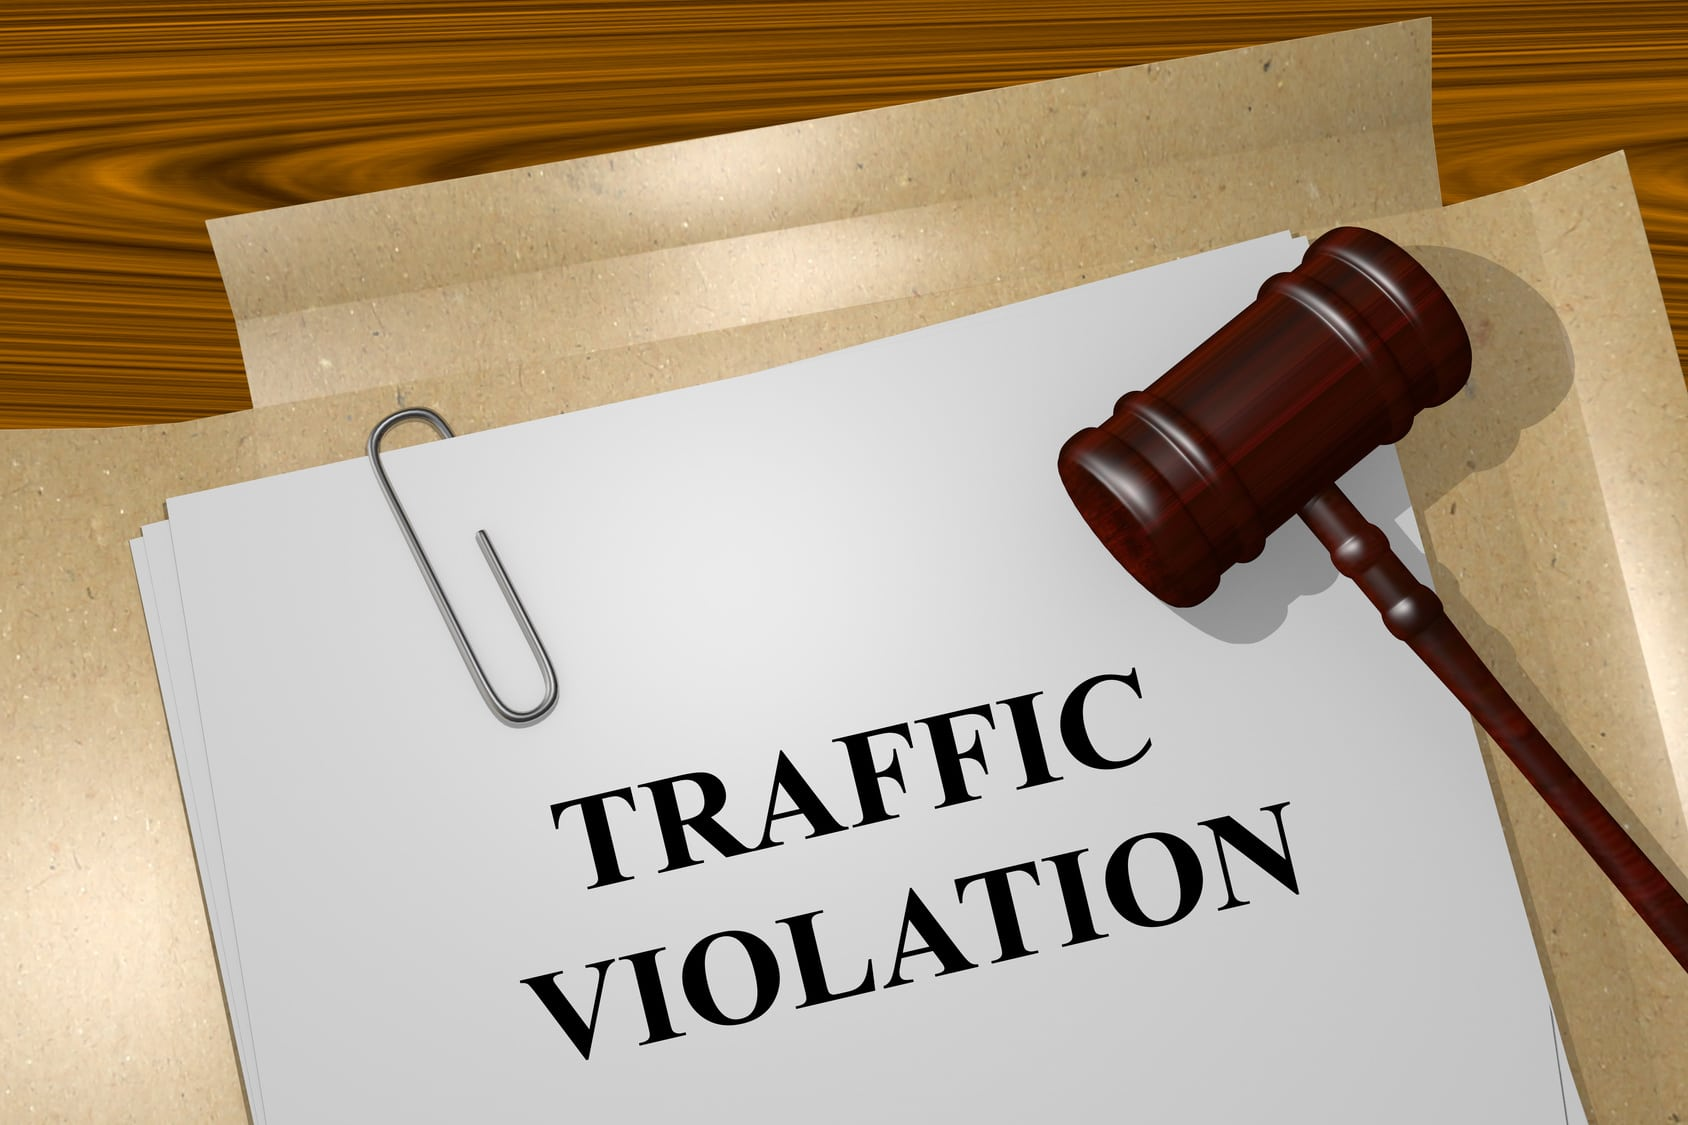 Have Outstanding Traffic Tickets? (Here's What You Can Do)